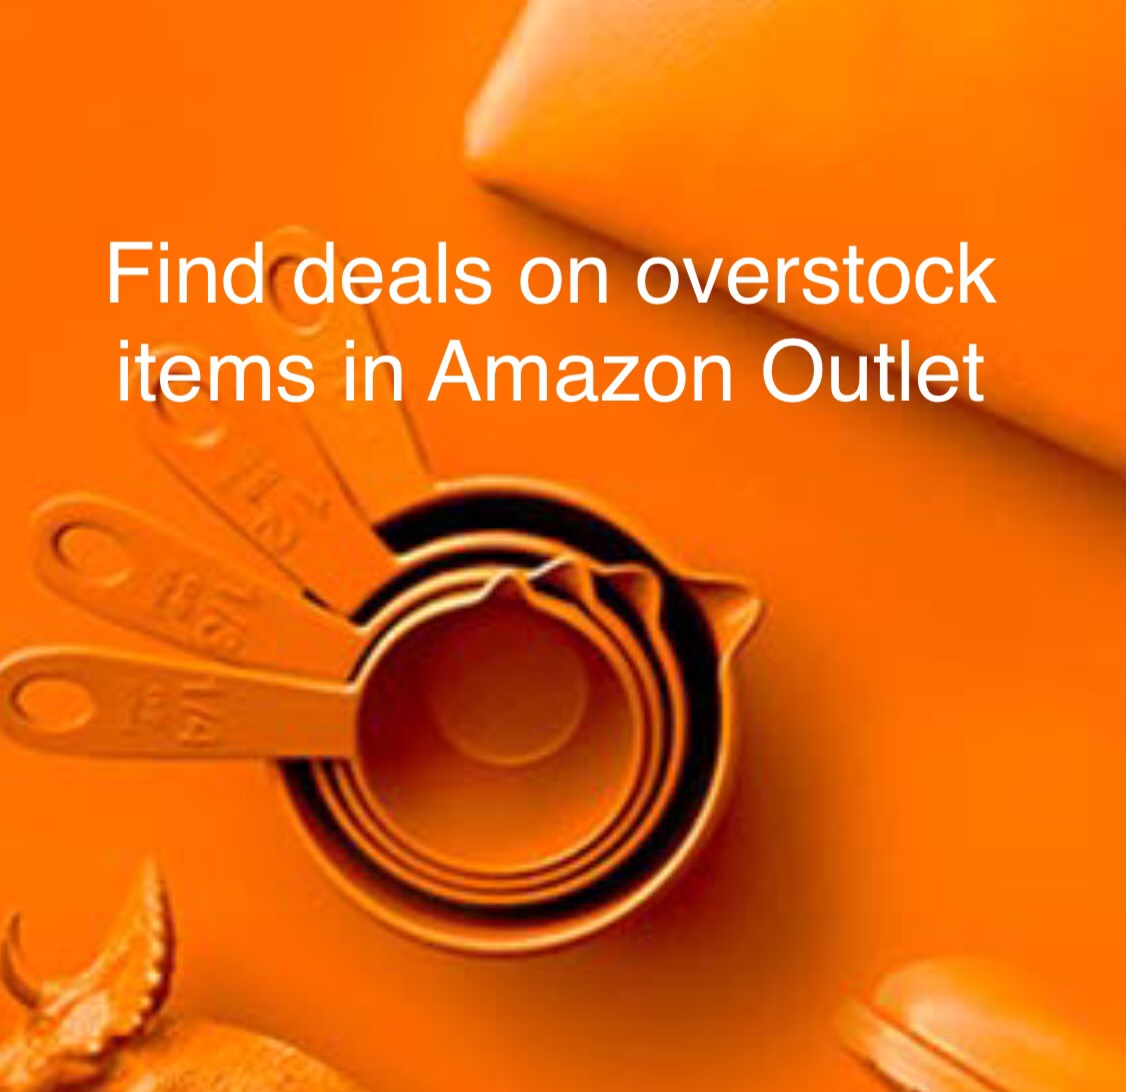 Find deals on overstock items in Amazon Outlet